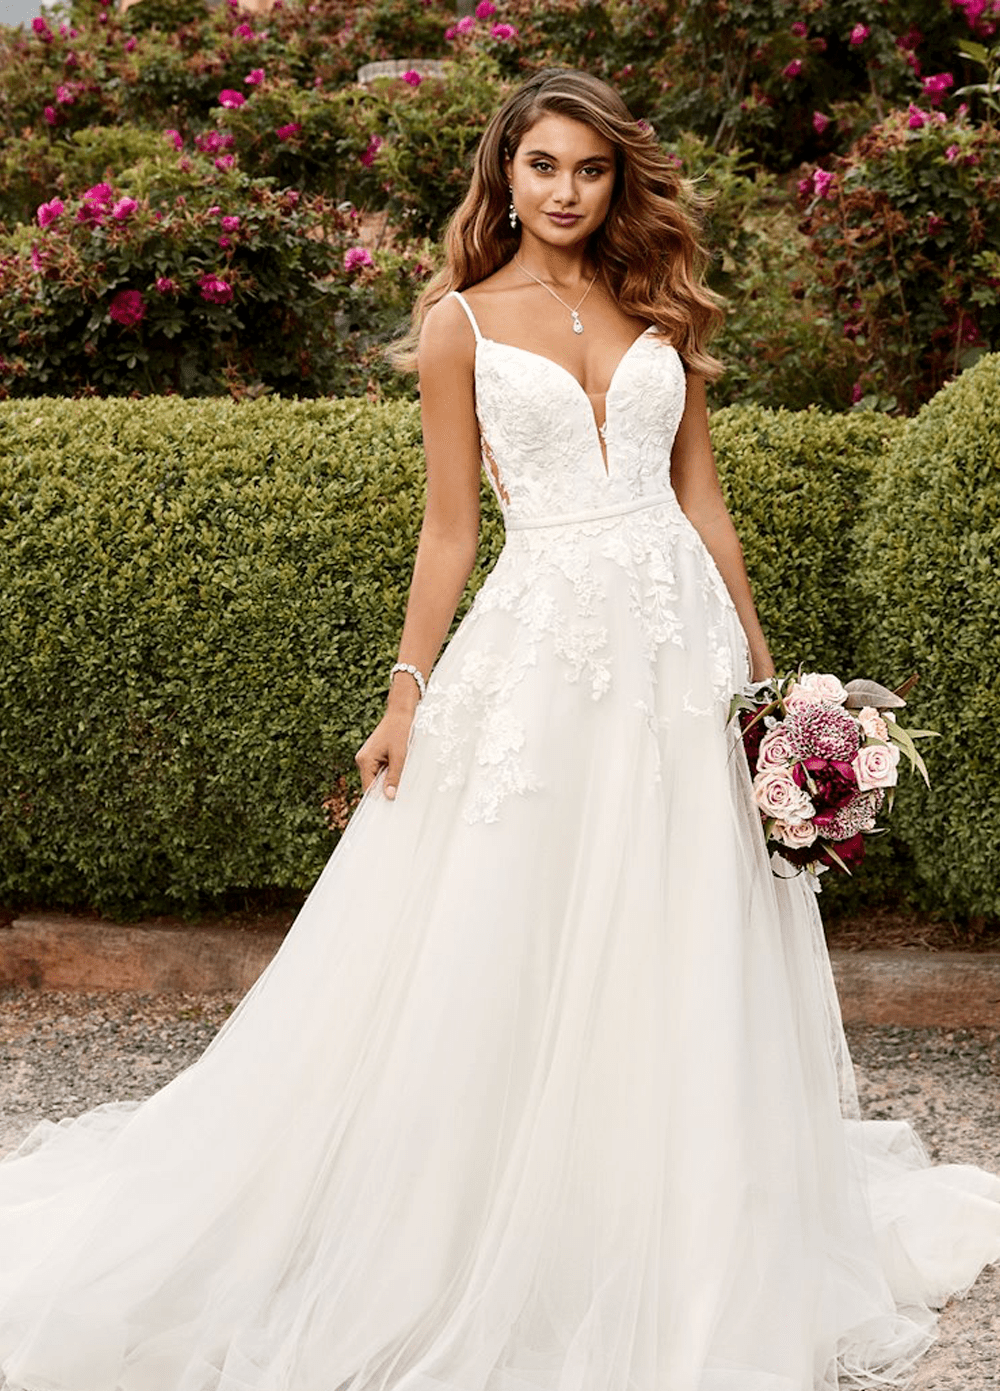 Aurora wedding dress from the Sophia Tolli 2021 collection